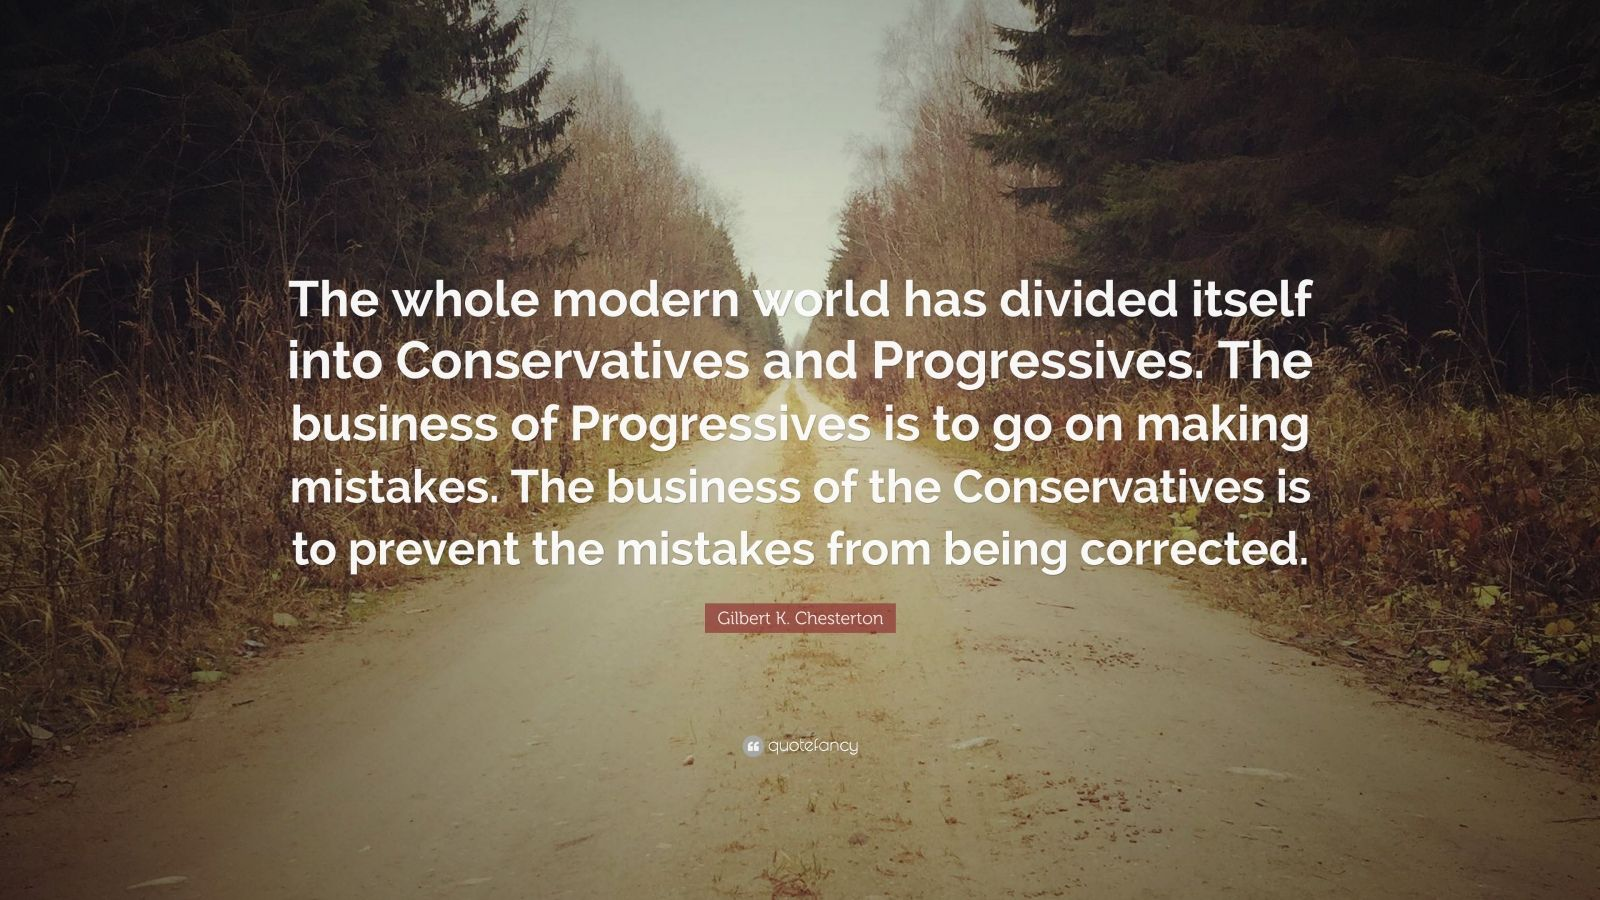 "Gilbert K. Chesterton Quote: ""The whole modern world has divided itself into Conservatives and Progressives. The business of Progressives is to go on making mistakes. The business of the Conservatives is to prevent the mistakes from being corrected."""